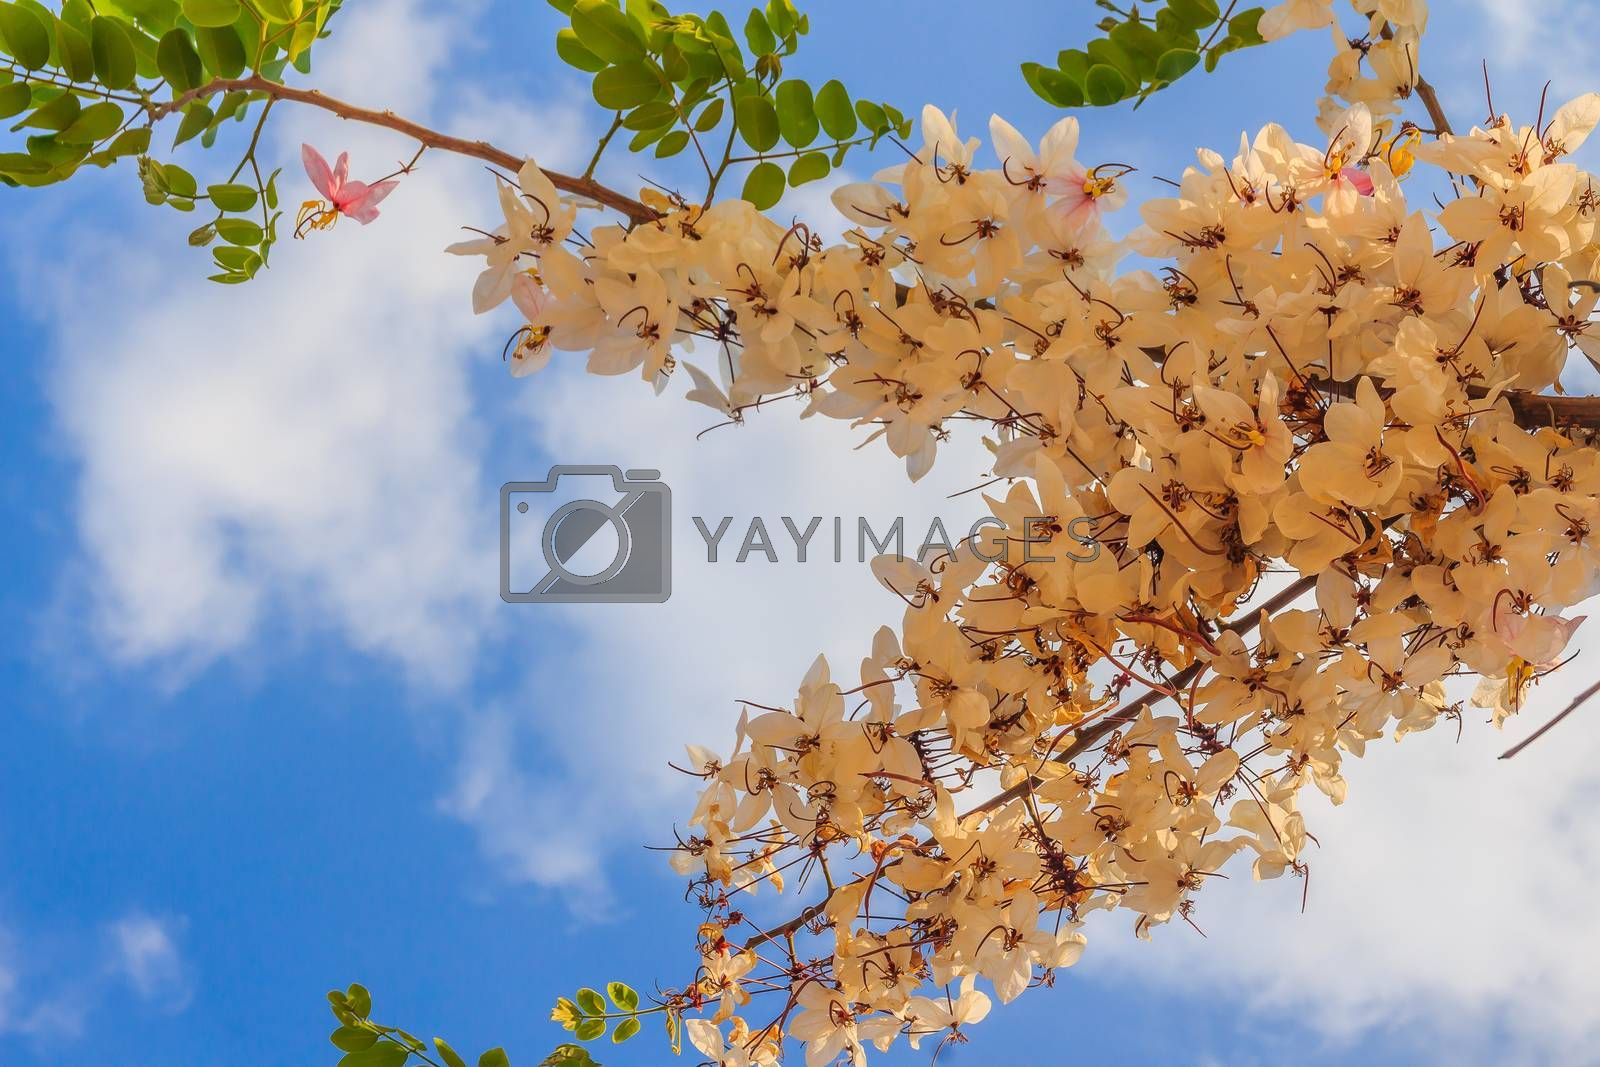 Pink shower tree flowers (Cassia bakeriana) on blue sky background. Cassia bakeriana, commonly called Wishing Tree, Pink Shower, is a small flowering tree native to forested areas of Thailand.